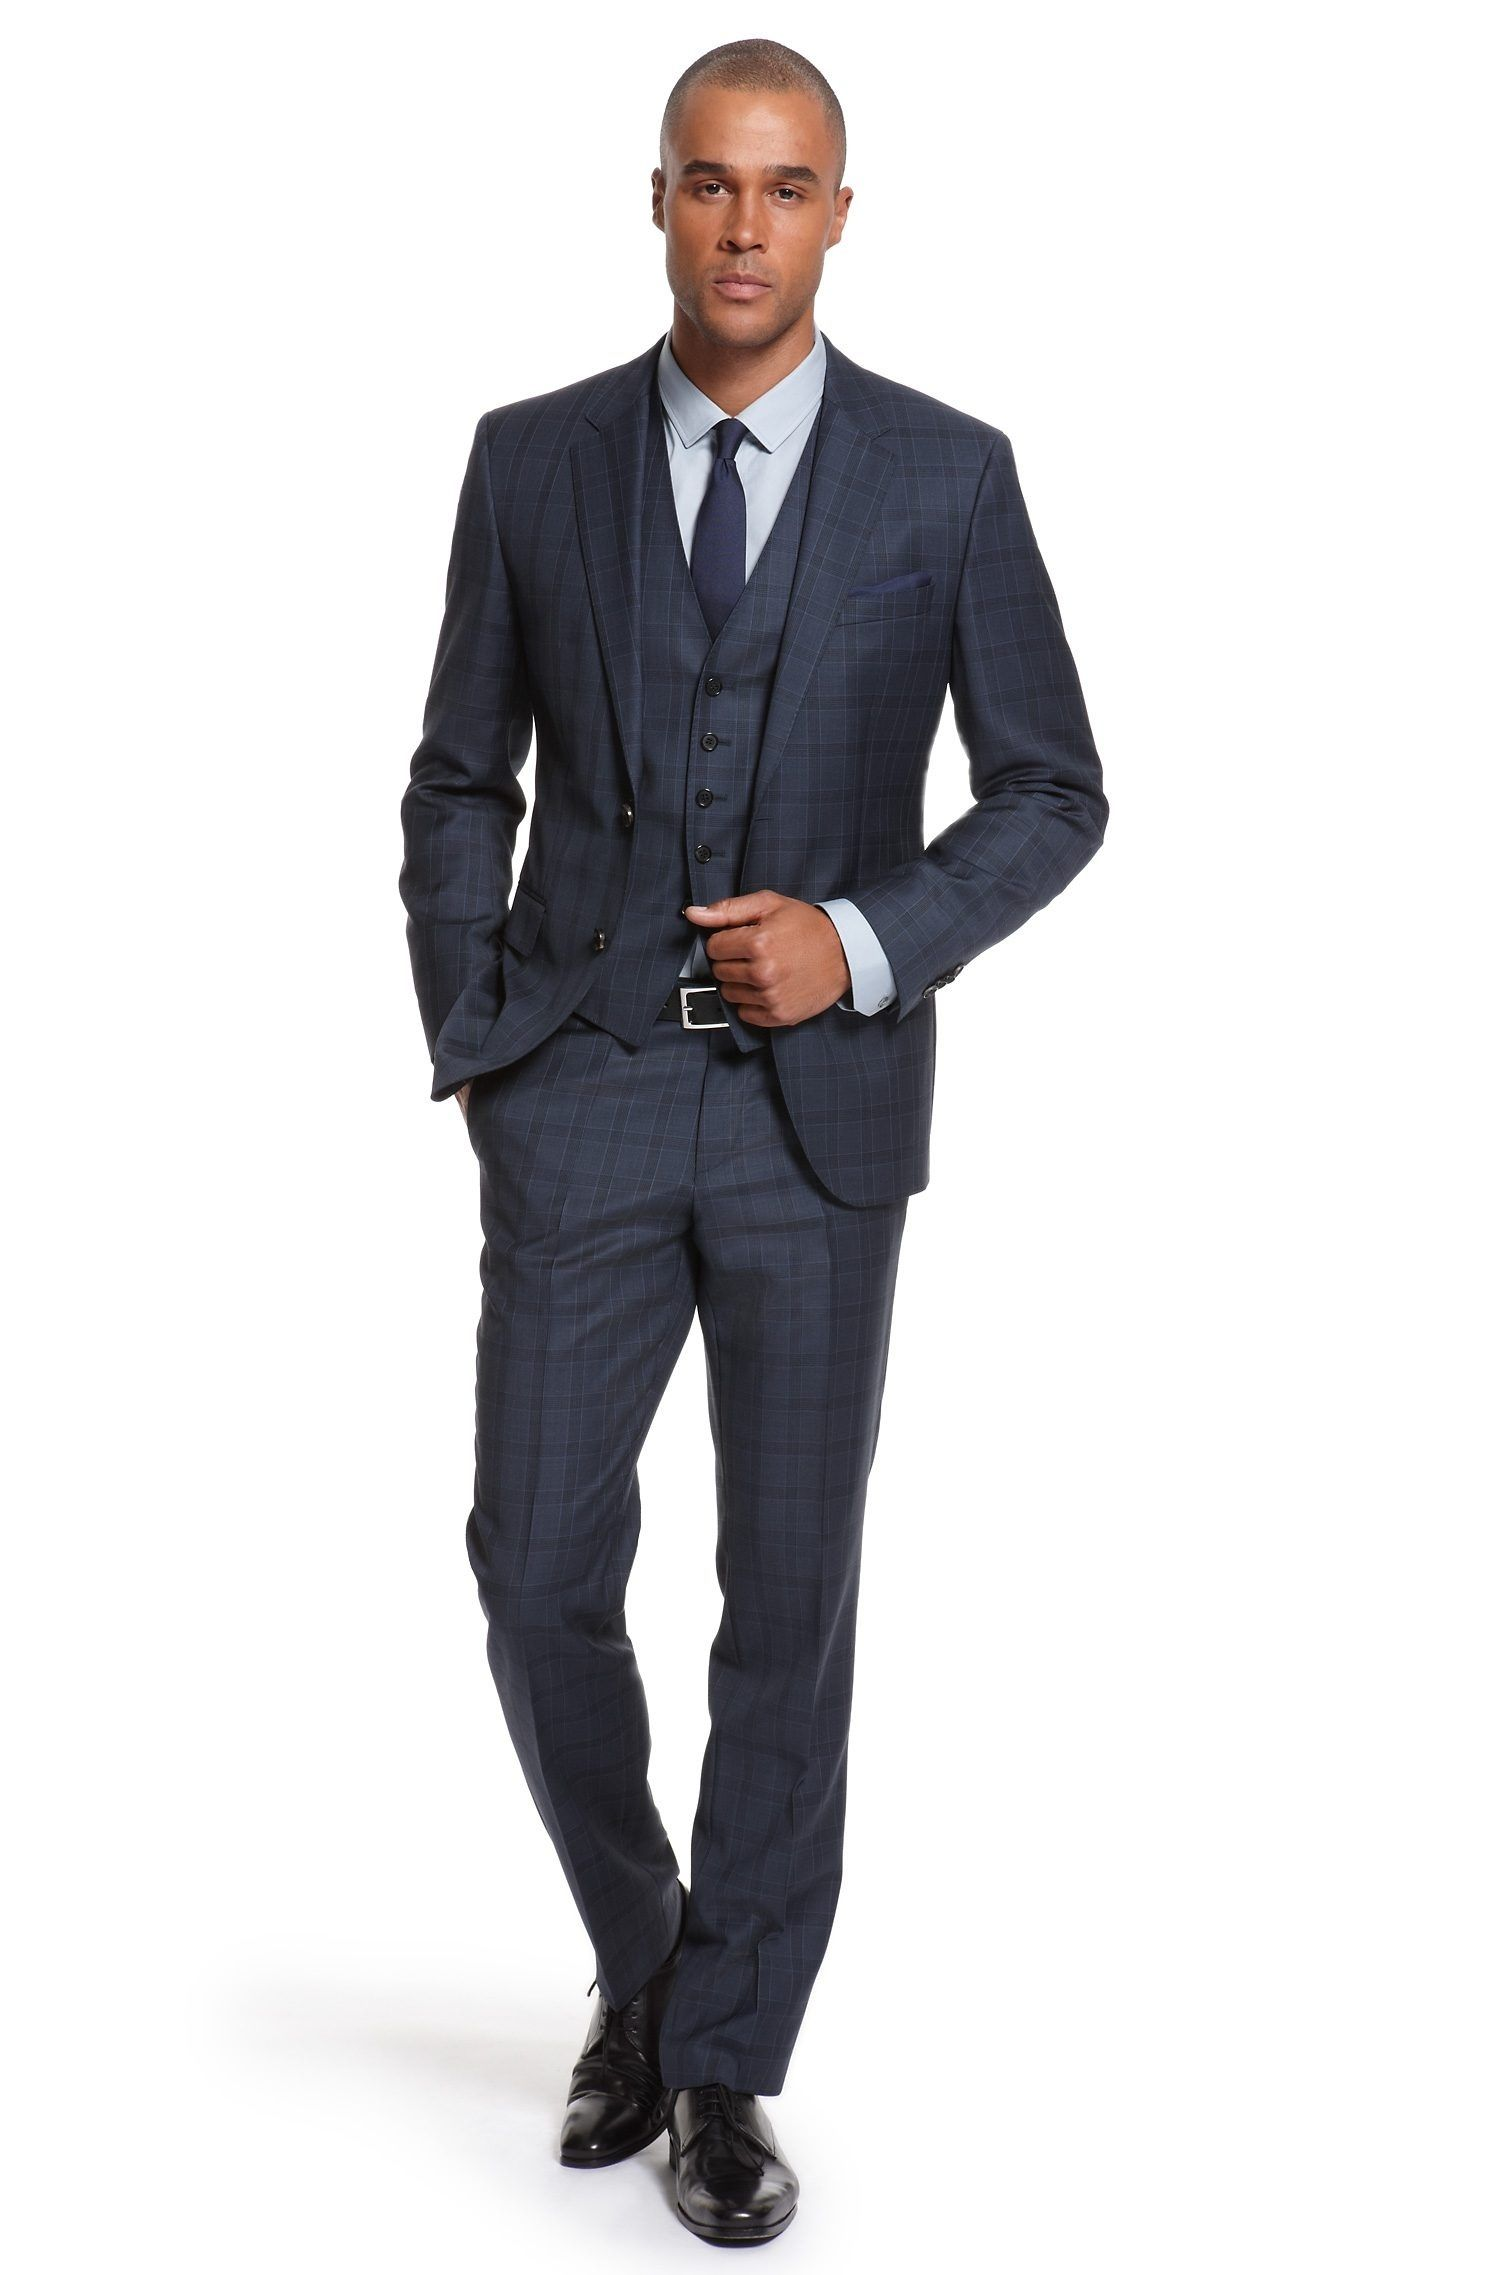 Three-Piece Suit in Dark Blue Window Pane Check by Hugo Boss Black. A style  I love